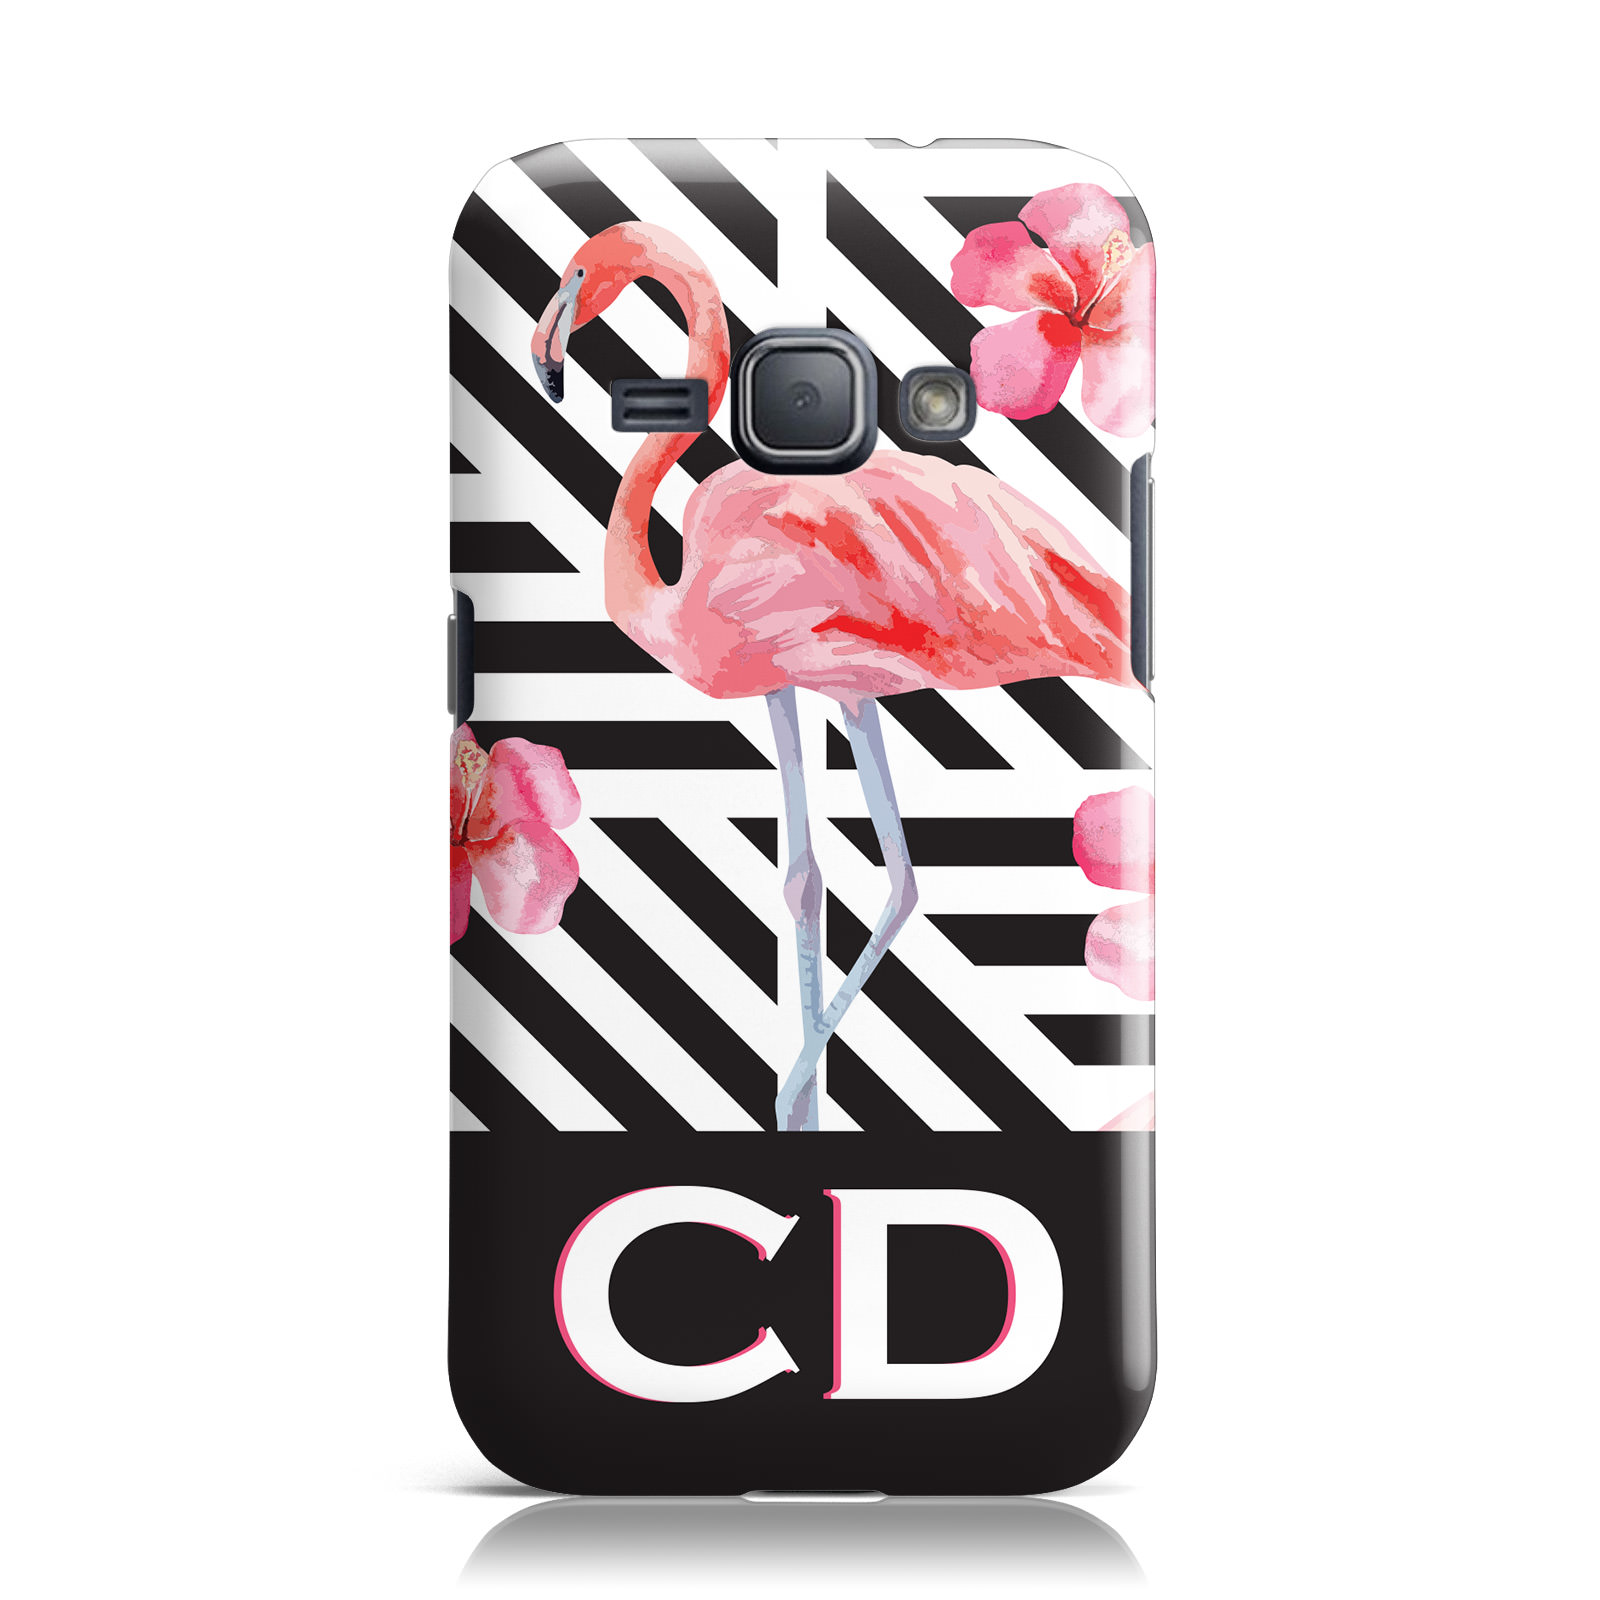 PERSONNALISE-INITIALES-FLAMANTS-ROSES-1-COQUE-POUR-SAMSUNG-GALAXY